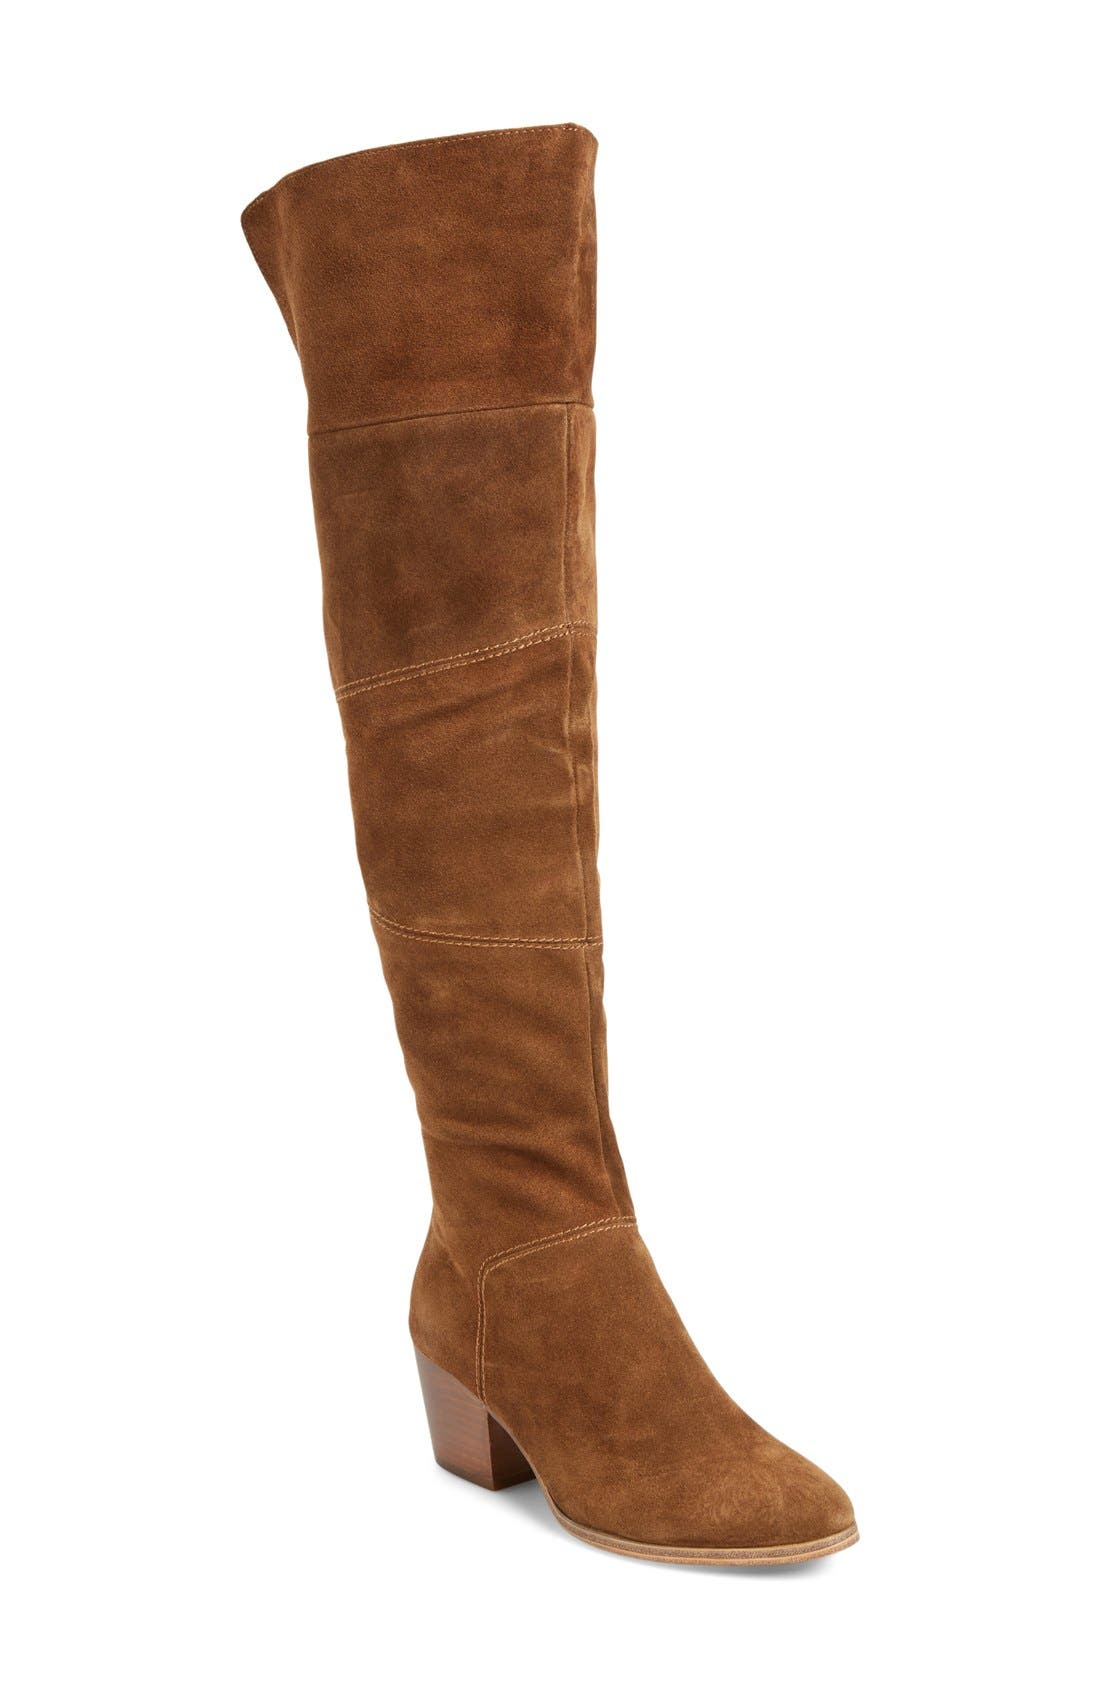 Alternate Image 1 Selected - Sole Society Melbourne Over the Knee Boot (Women)